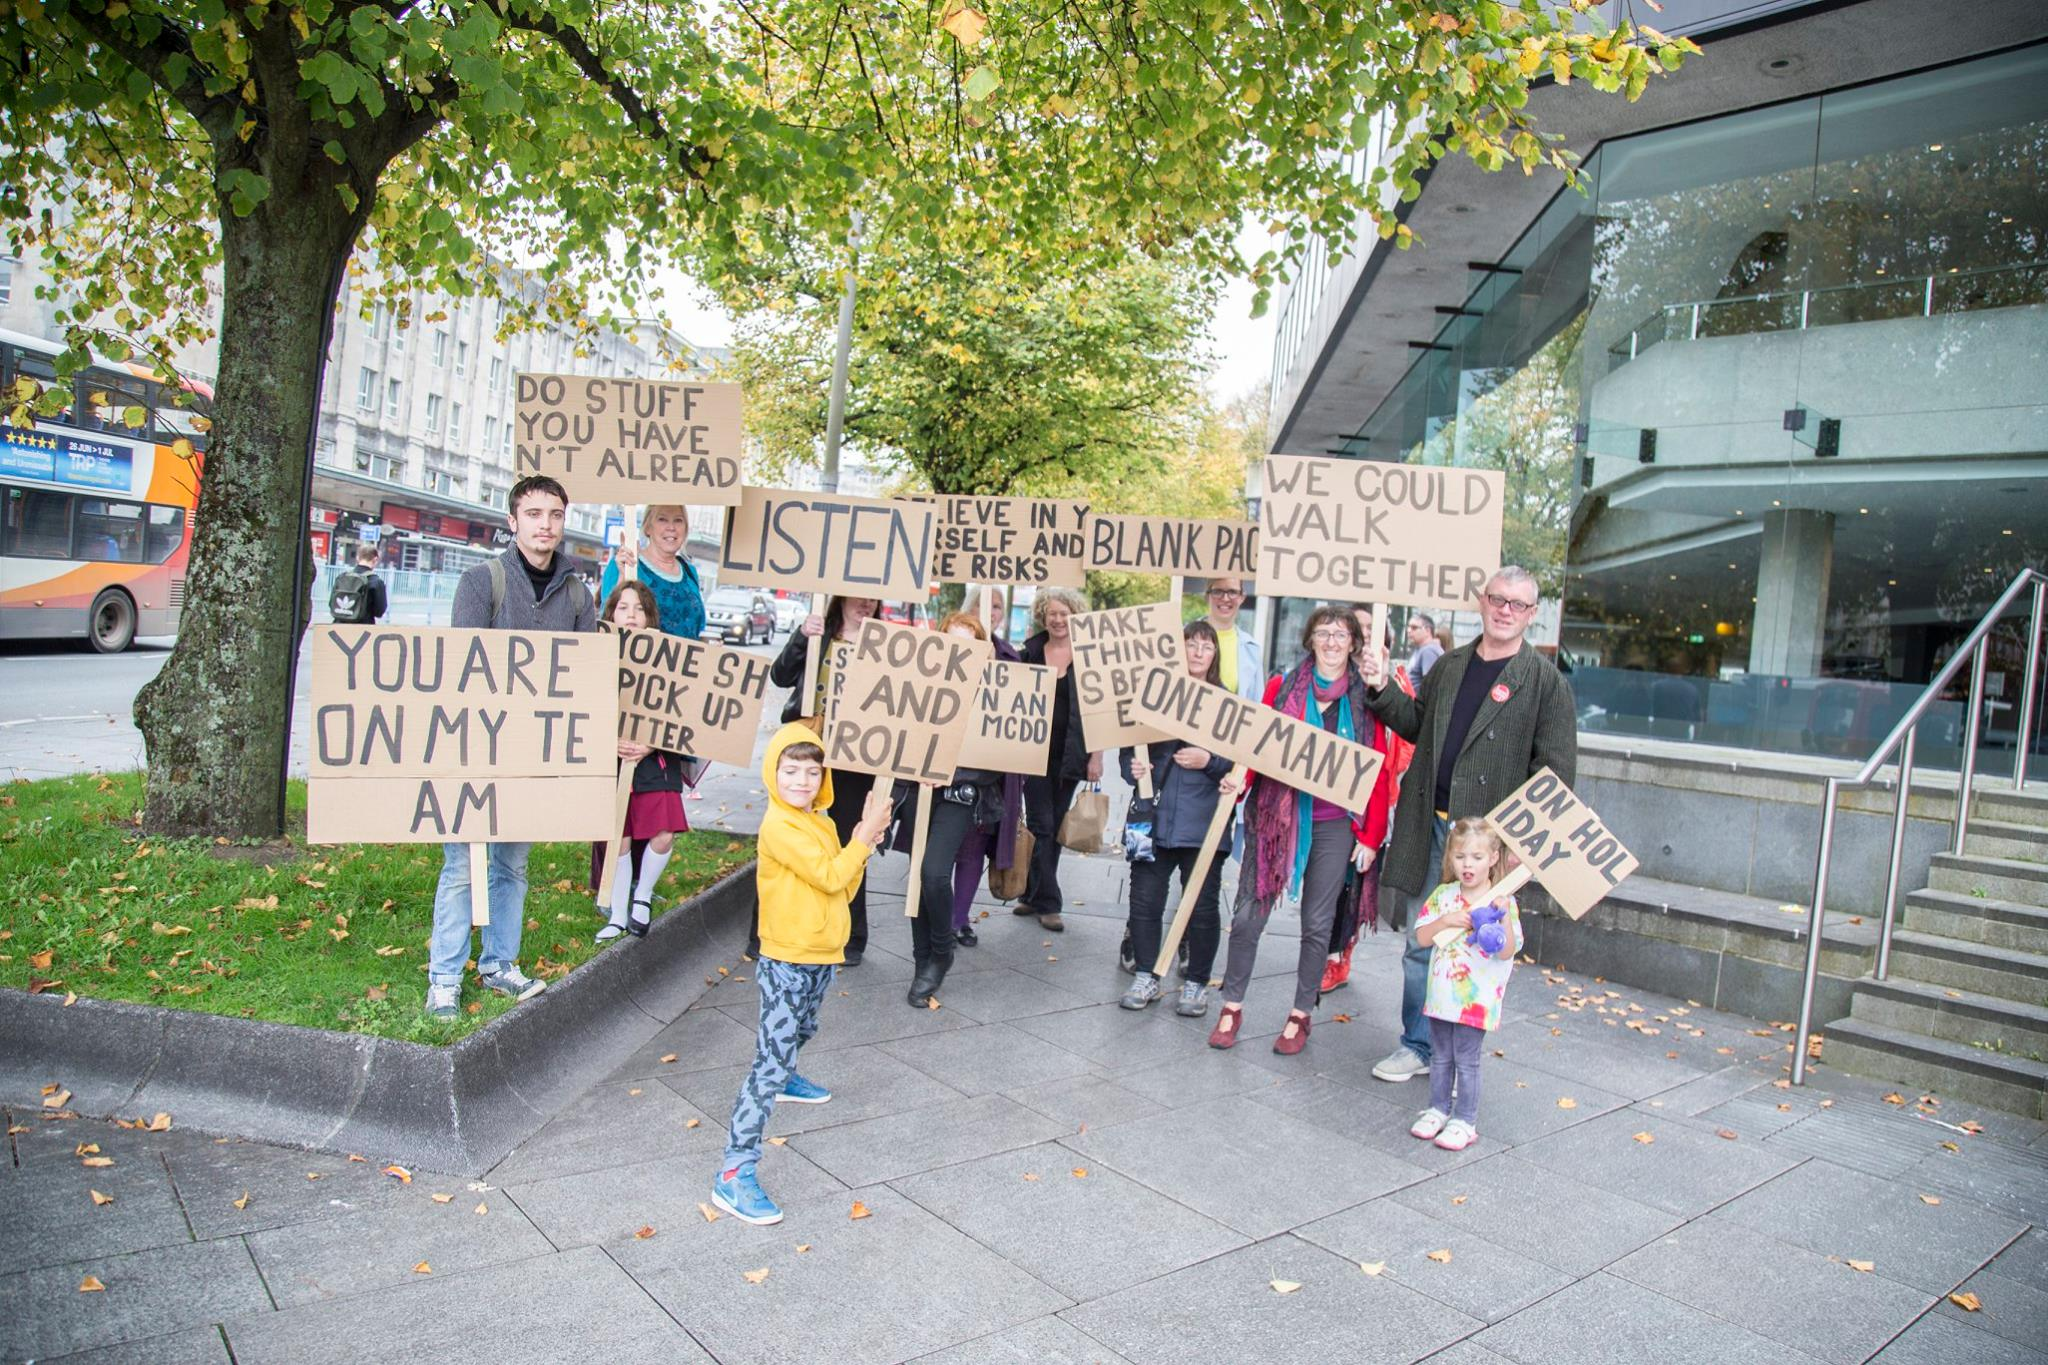 Photo © Gem Smith for Take A Part CIC